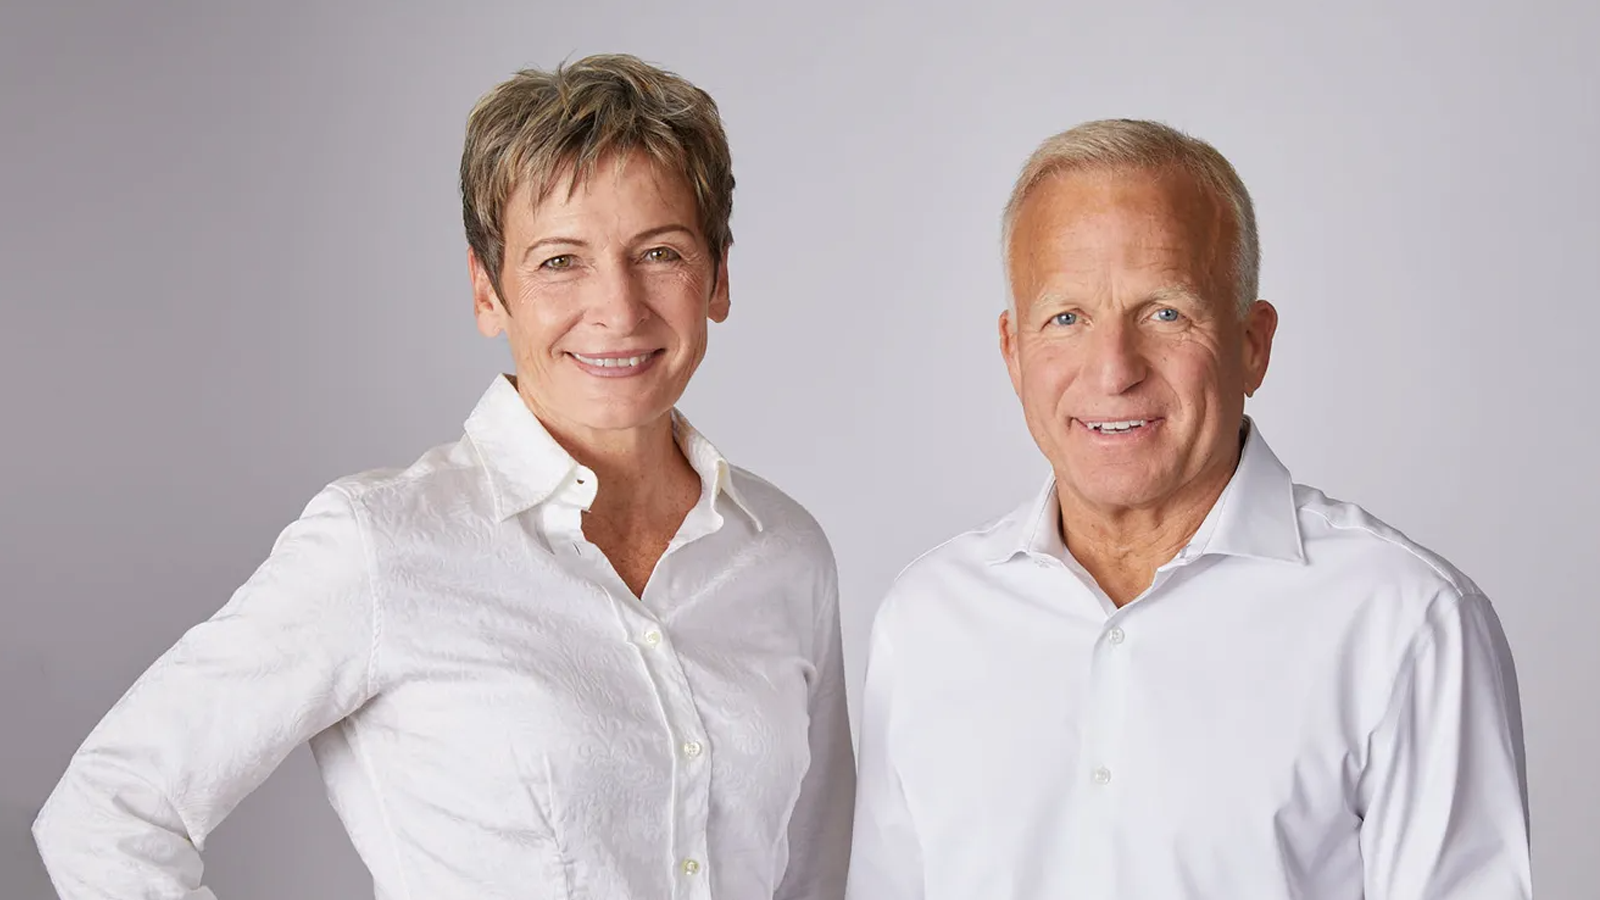 Peggy Whitson and John Shoffner